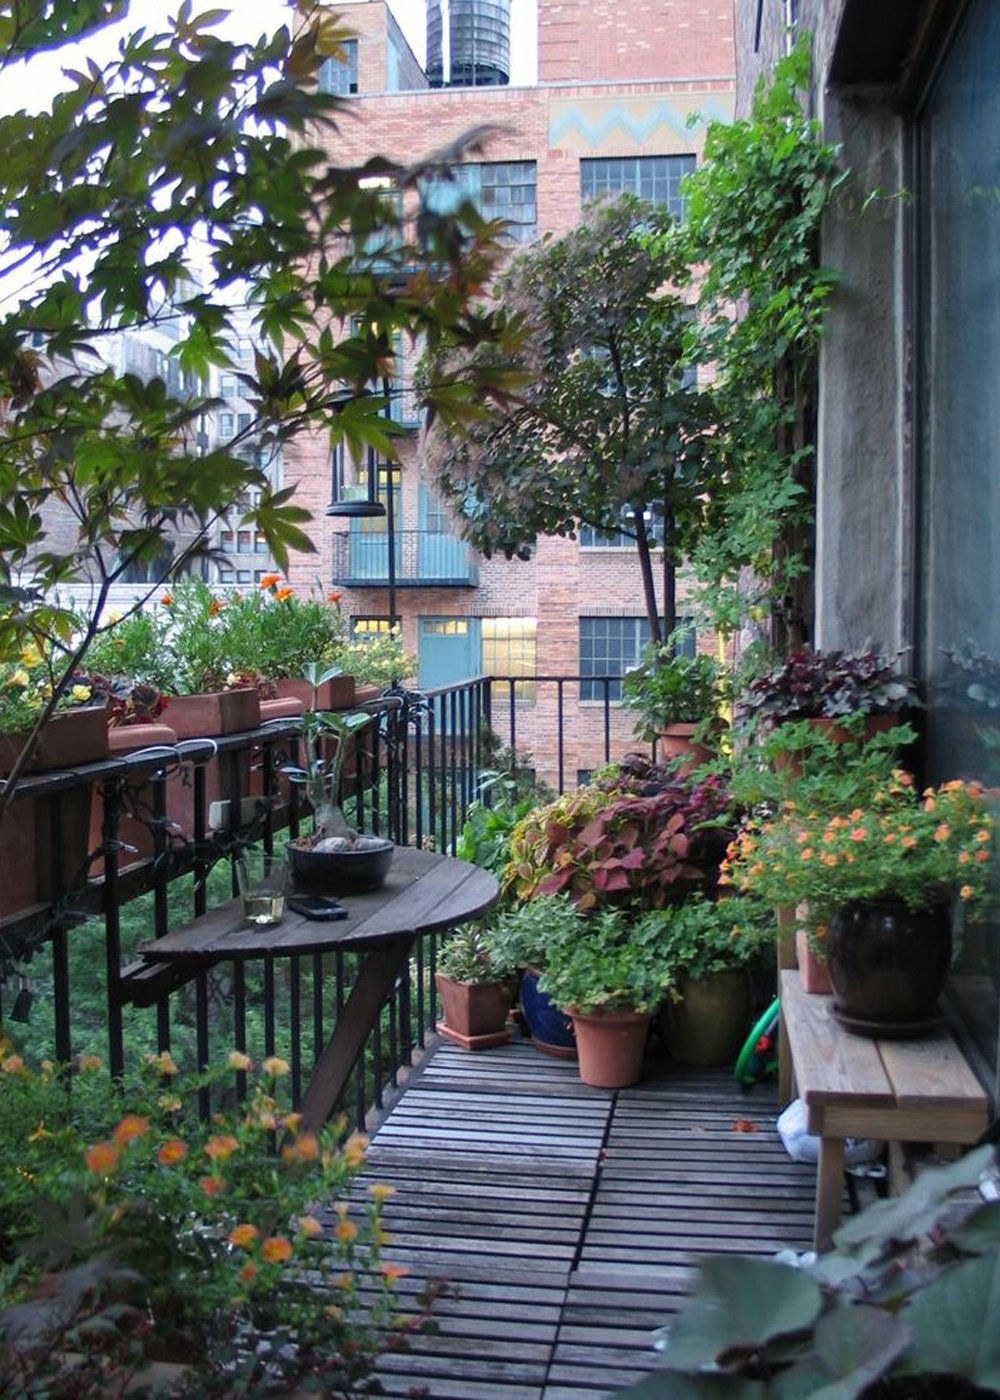 50 best balcony garden ideas and designs for 2020 Artificial Garden For Balcony id=30529